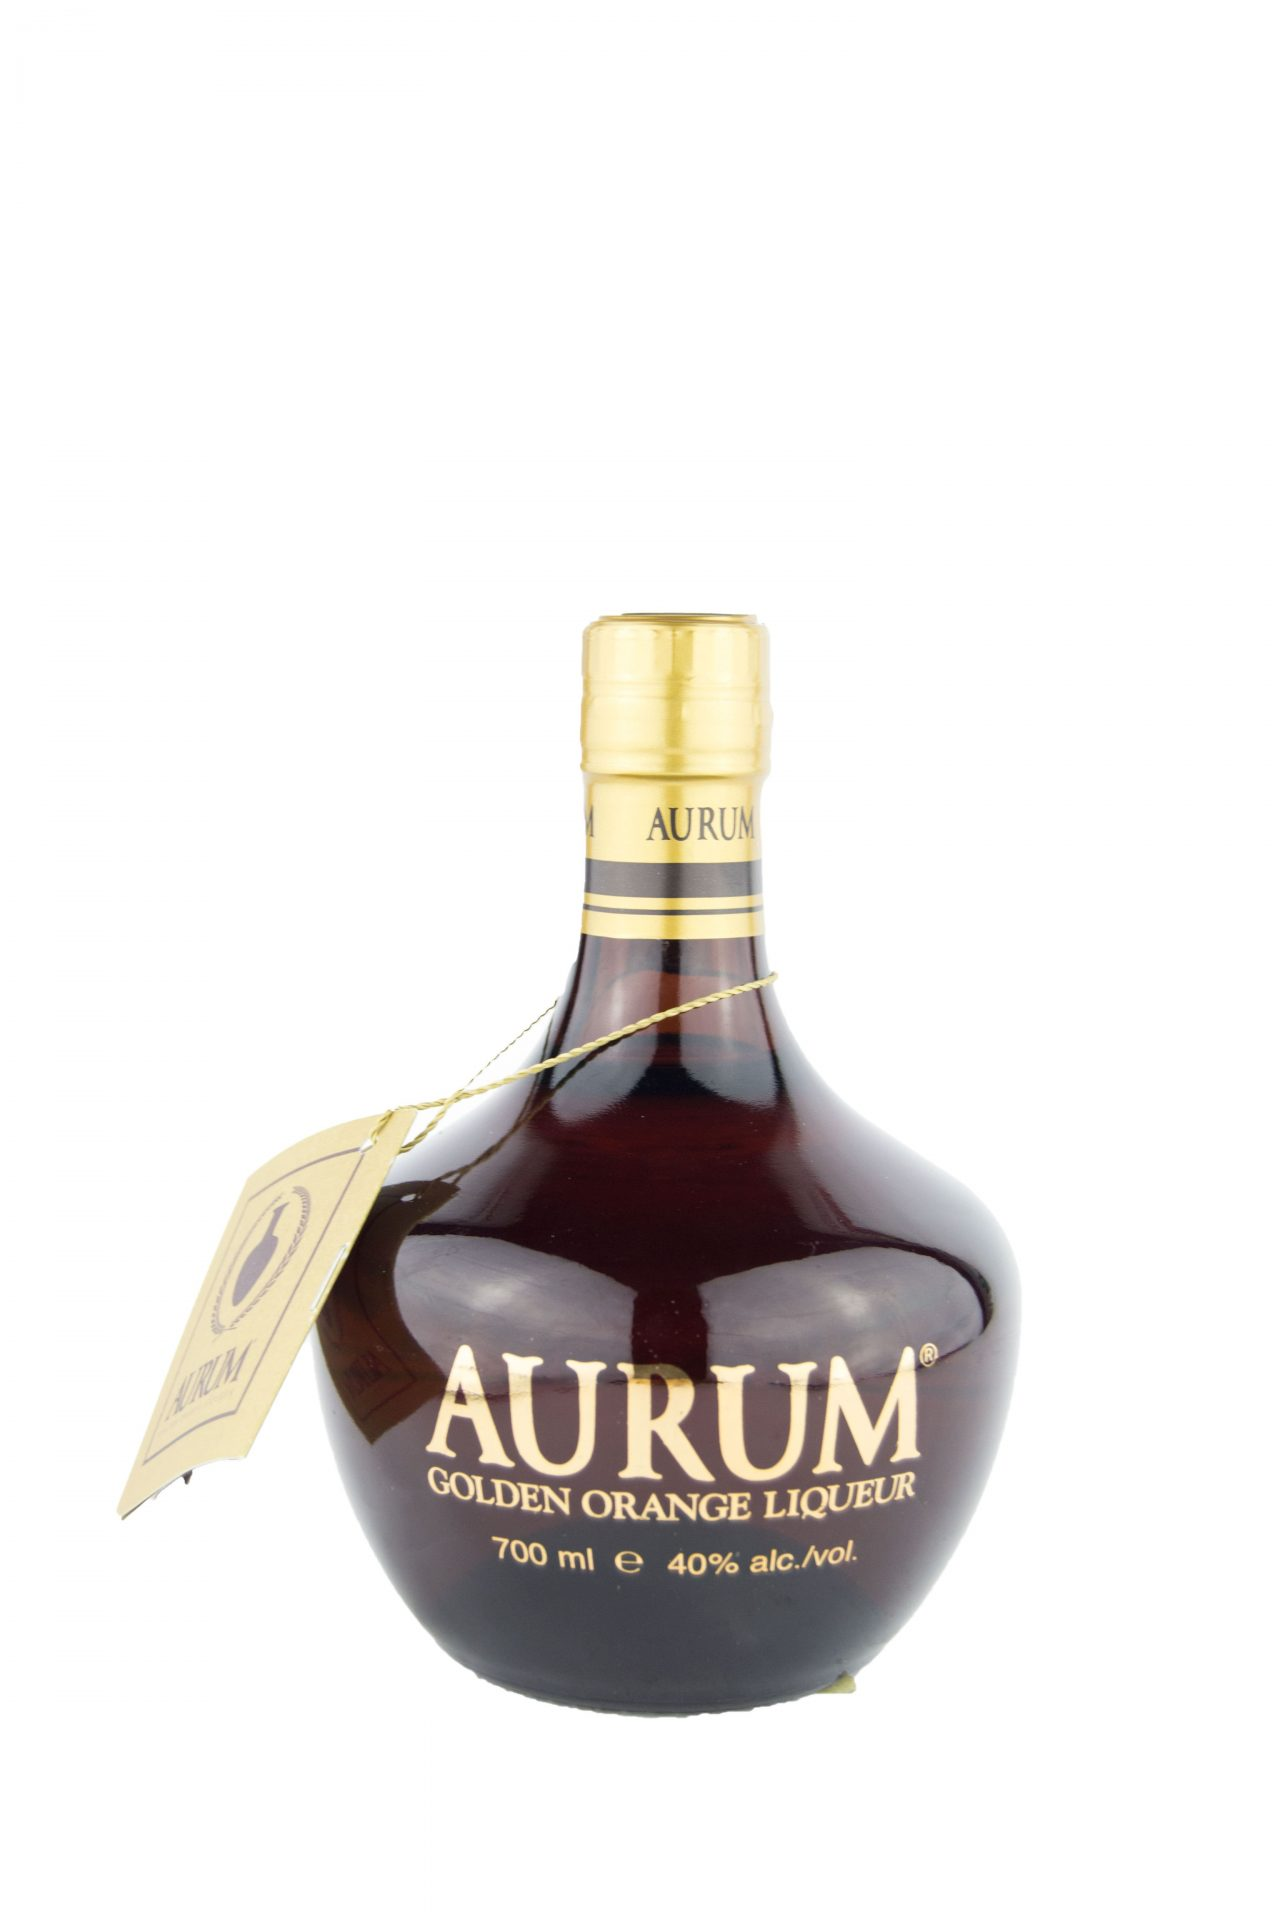 Aurum – Golden Orange Liqueur